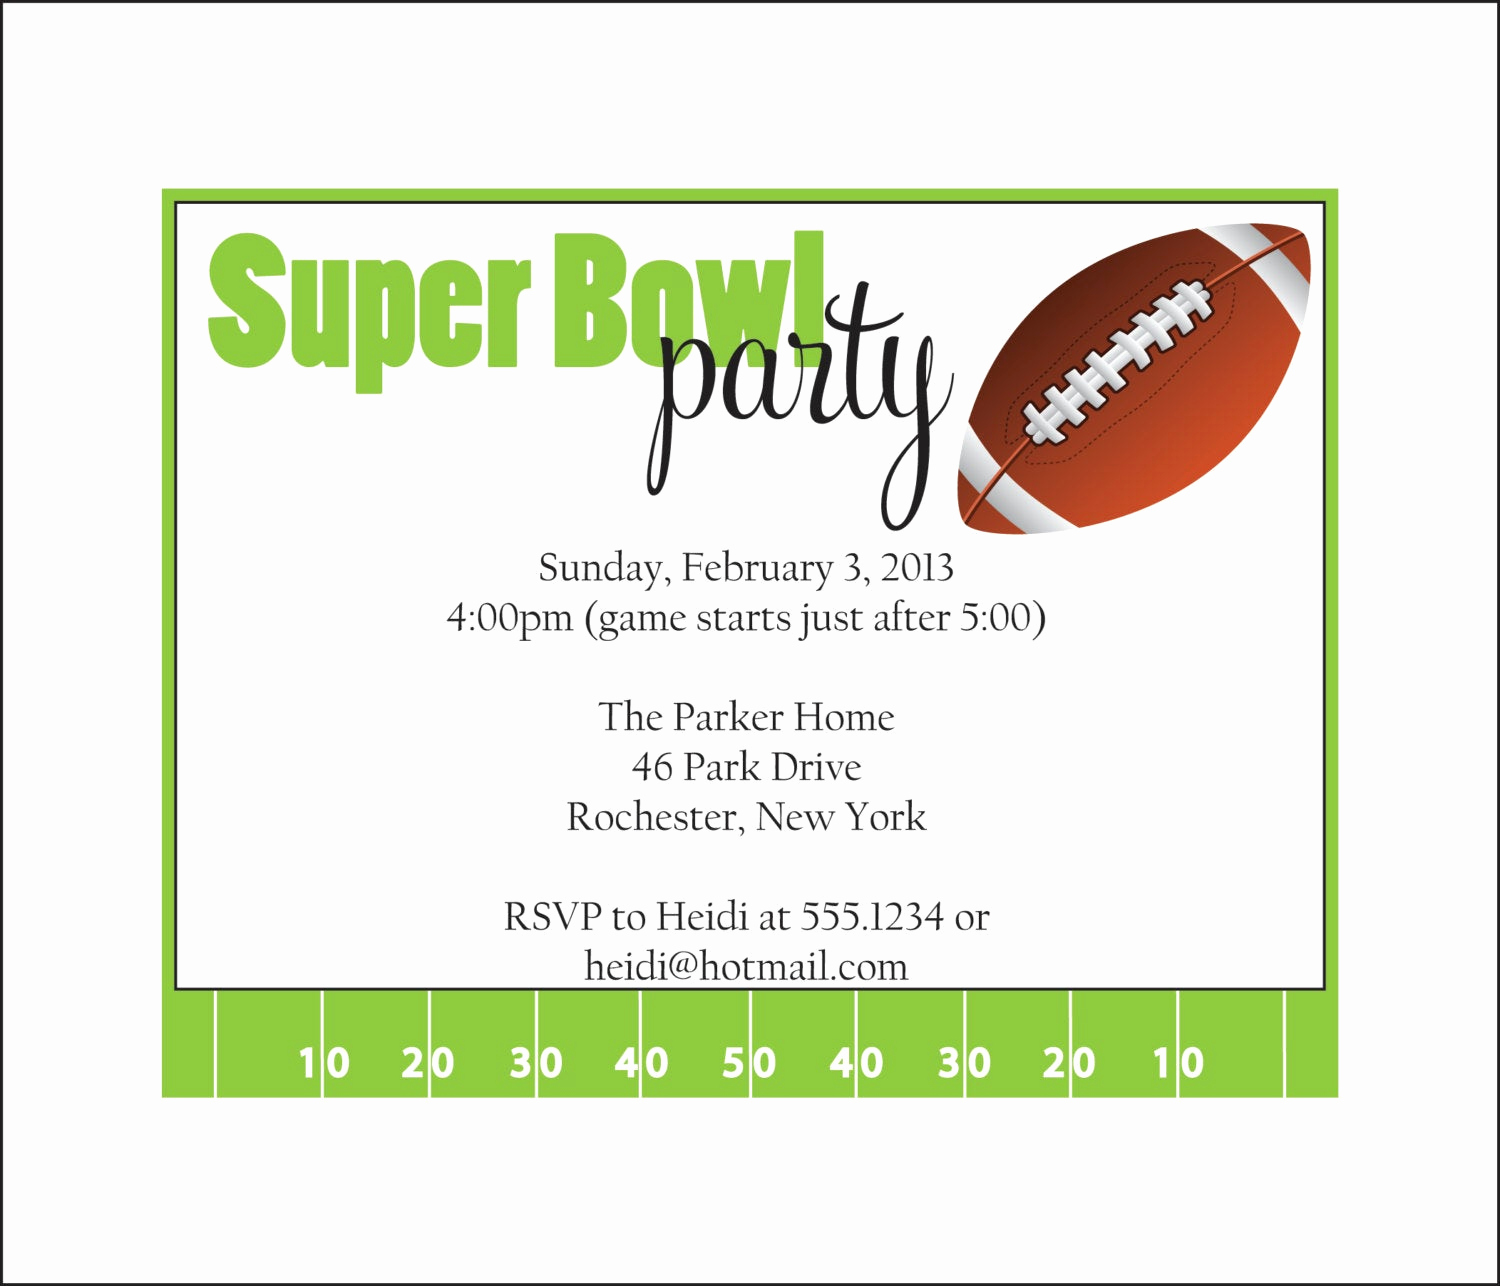 Superbowl Party Invitation Wording Beautiful Super Bowl Party Invitation Set Of 10 by Simplystampedinvites